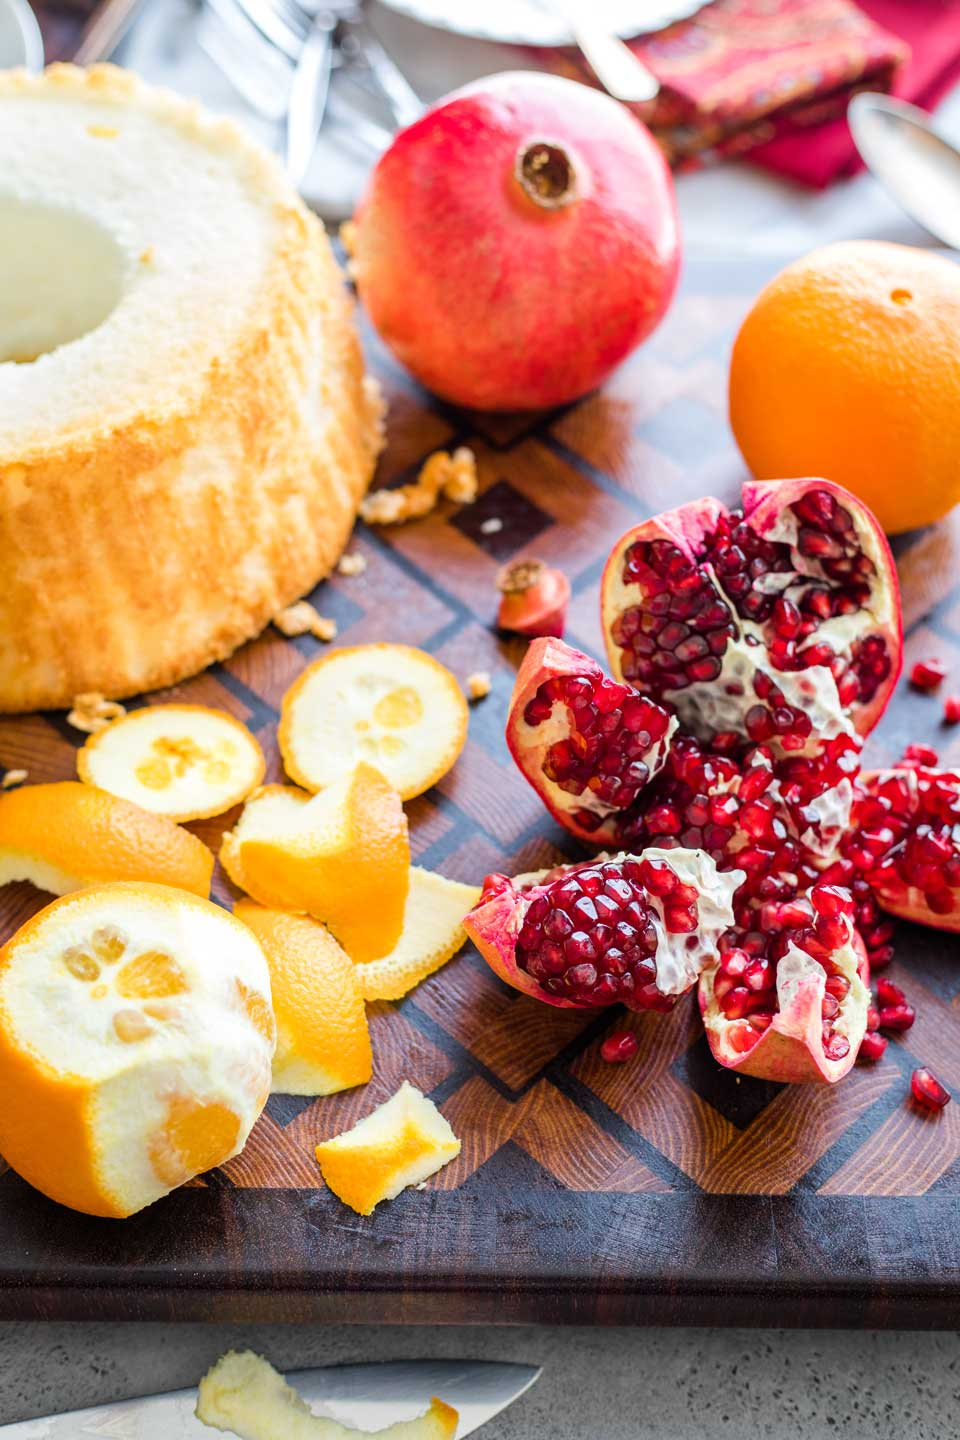 wooden cutting board with a whole angel food cake, and oranges and pomegranates that are beginning to be cut and pulled apart